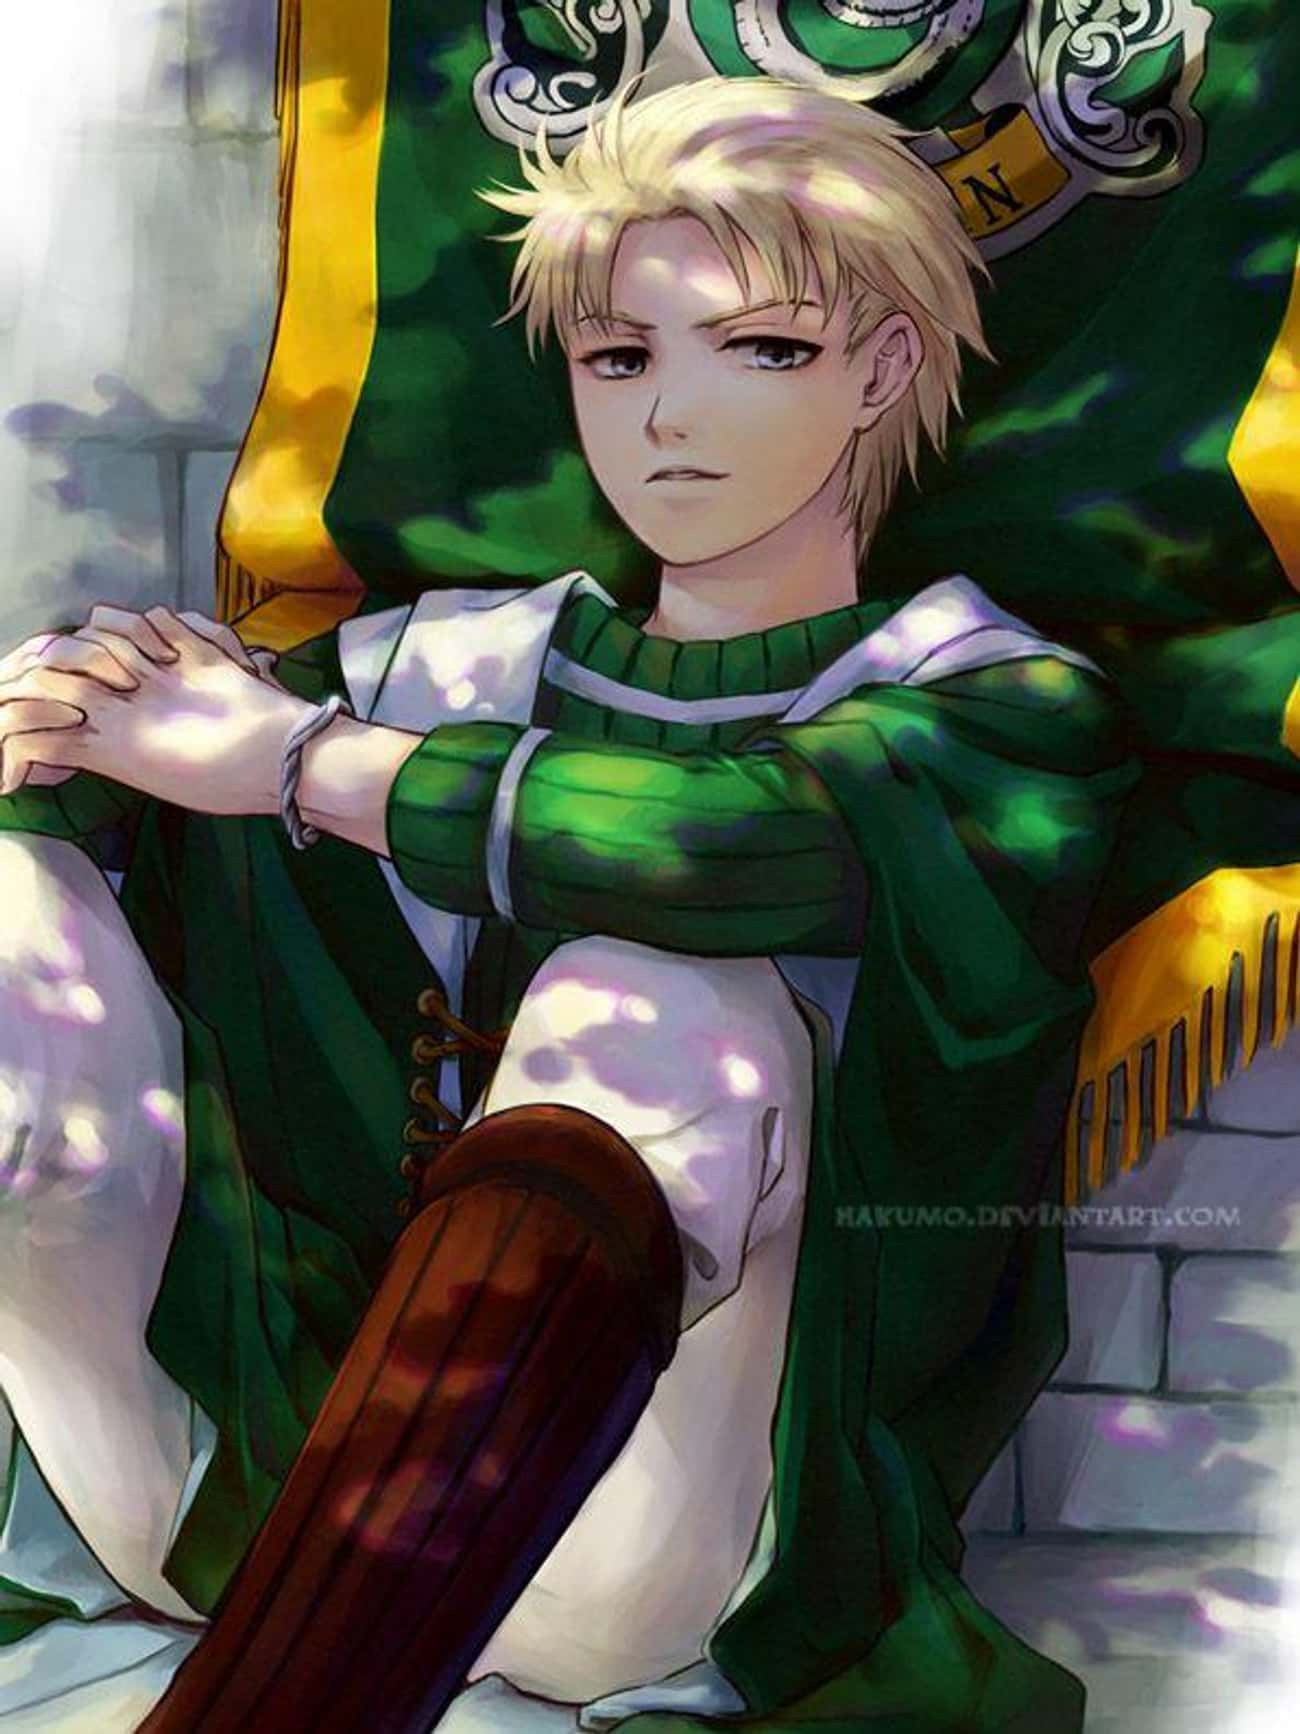 Draco Malfoy is listed (or ranked) 3 on the list 24 Anime Versions Of Harry Potter Characters You Wish Were From A Real Anime